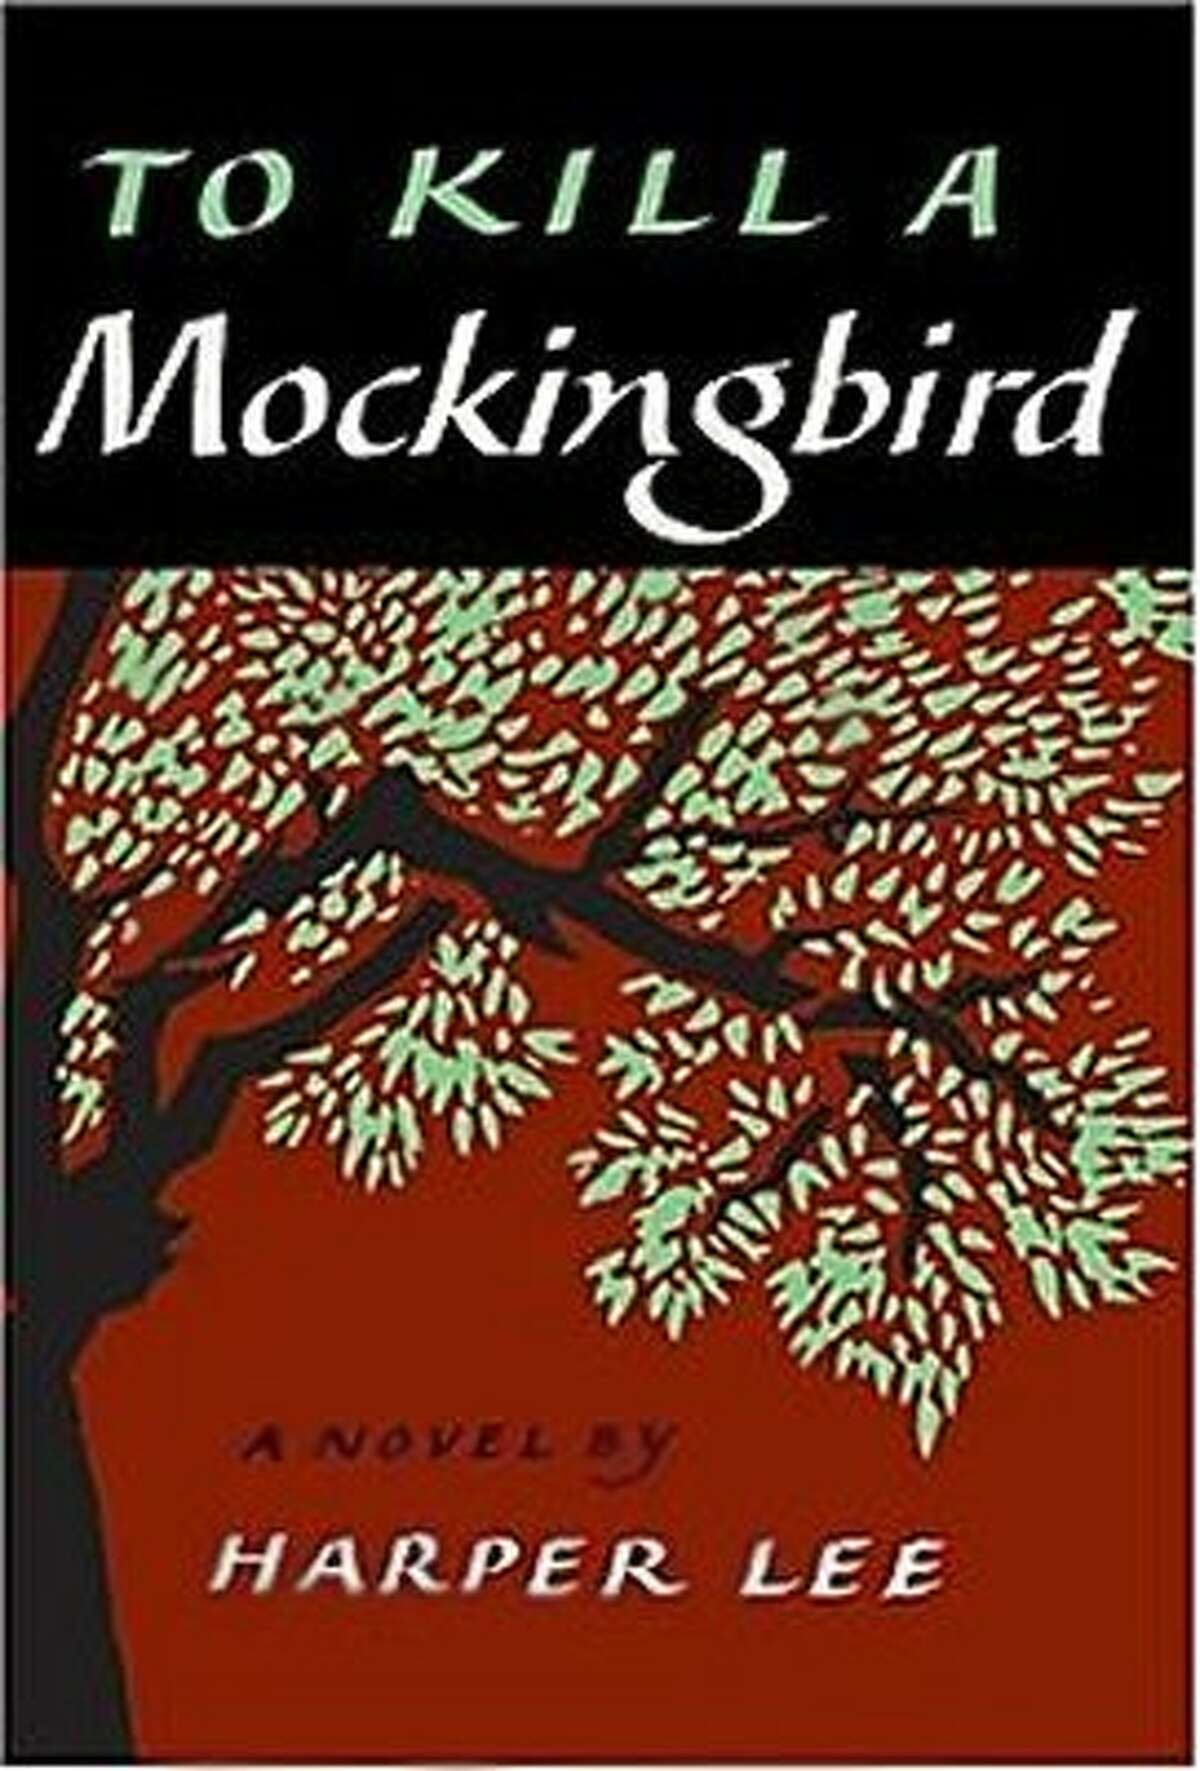 Harper Lee has been considered a literary one-hit-wonder, but as of July 14, 2015,